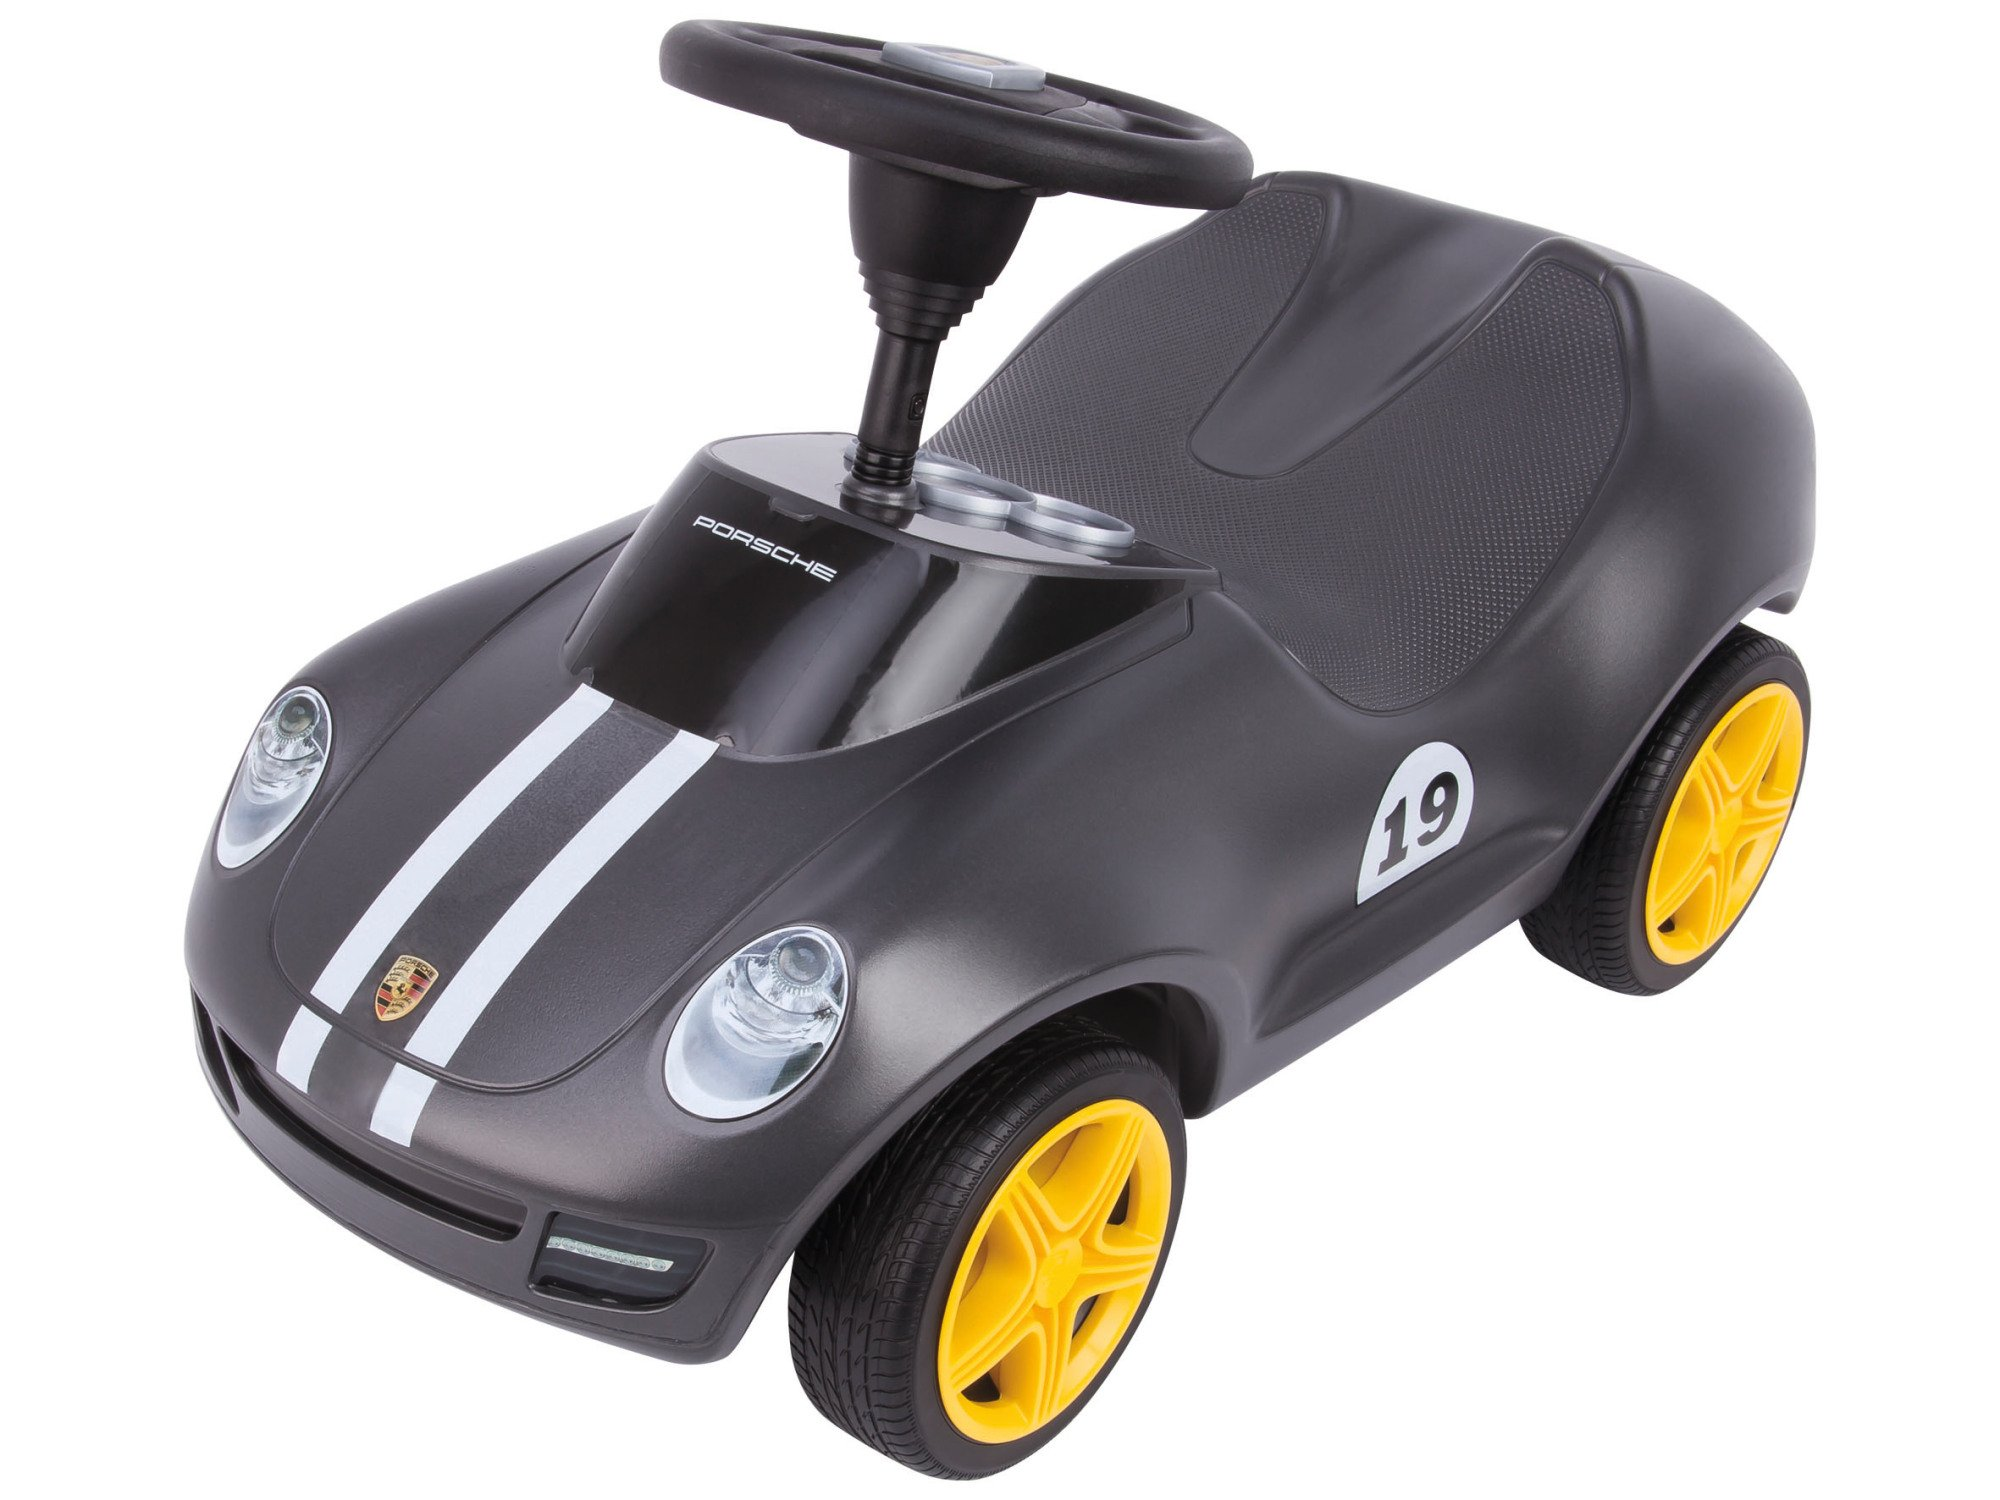 BIG Baby Porsche Ride-On Vehicle